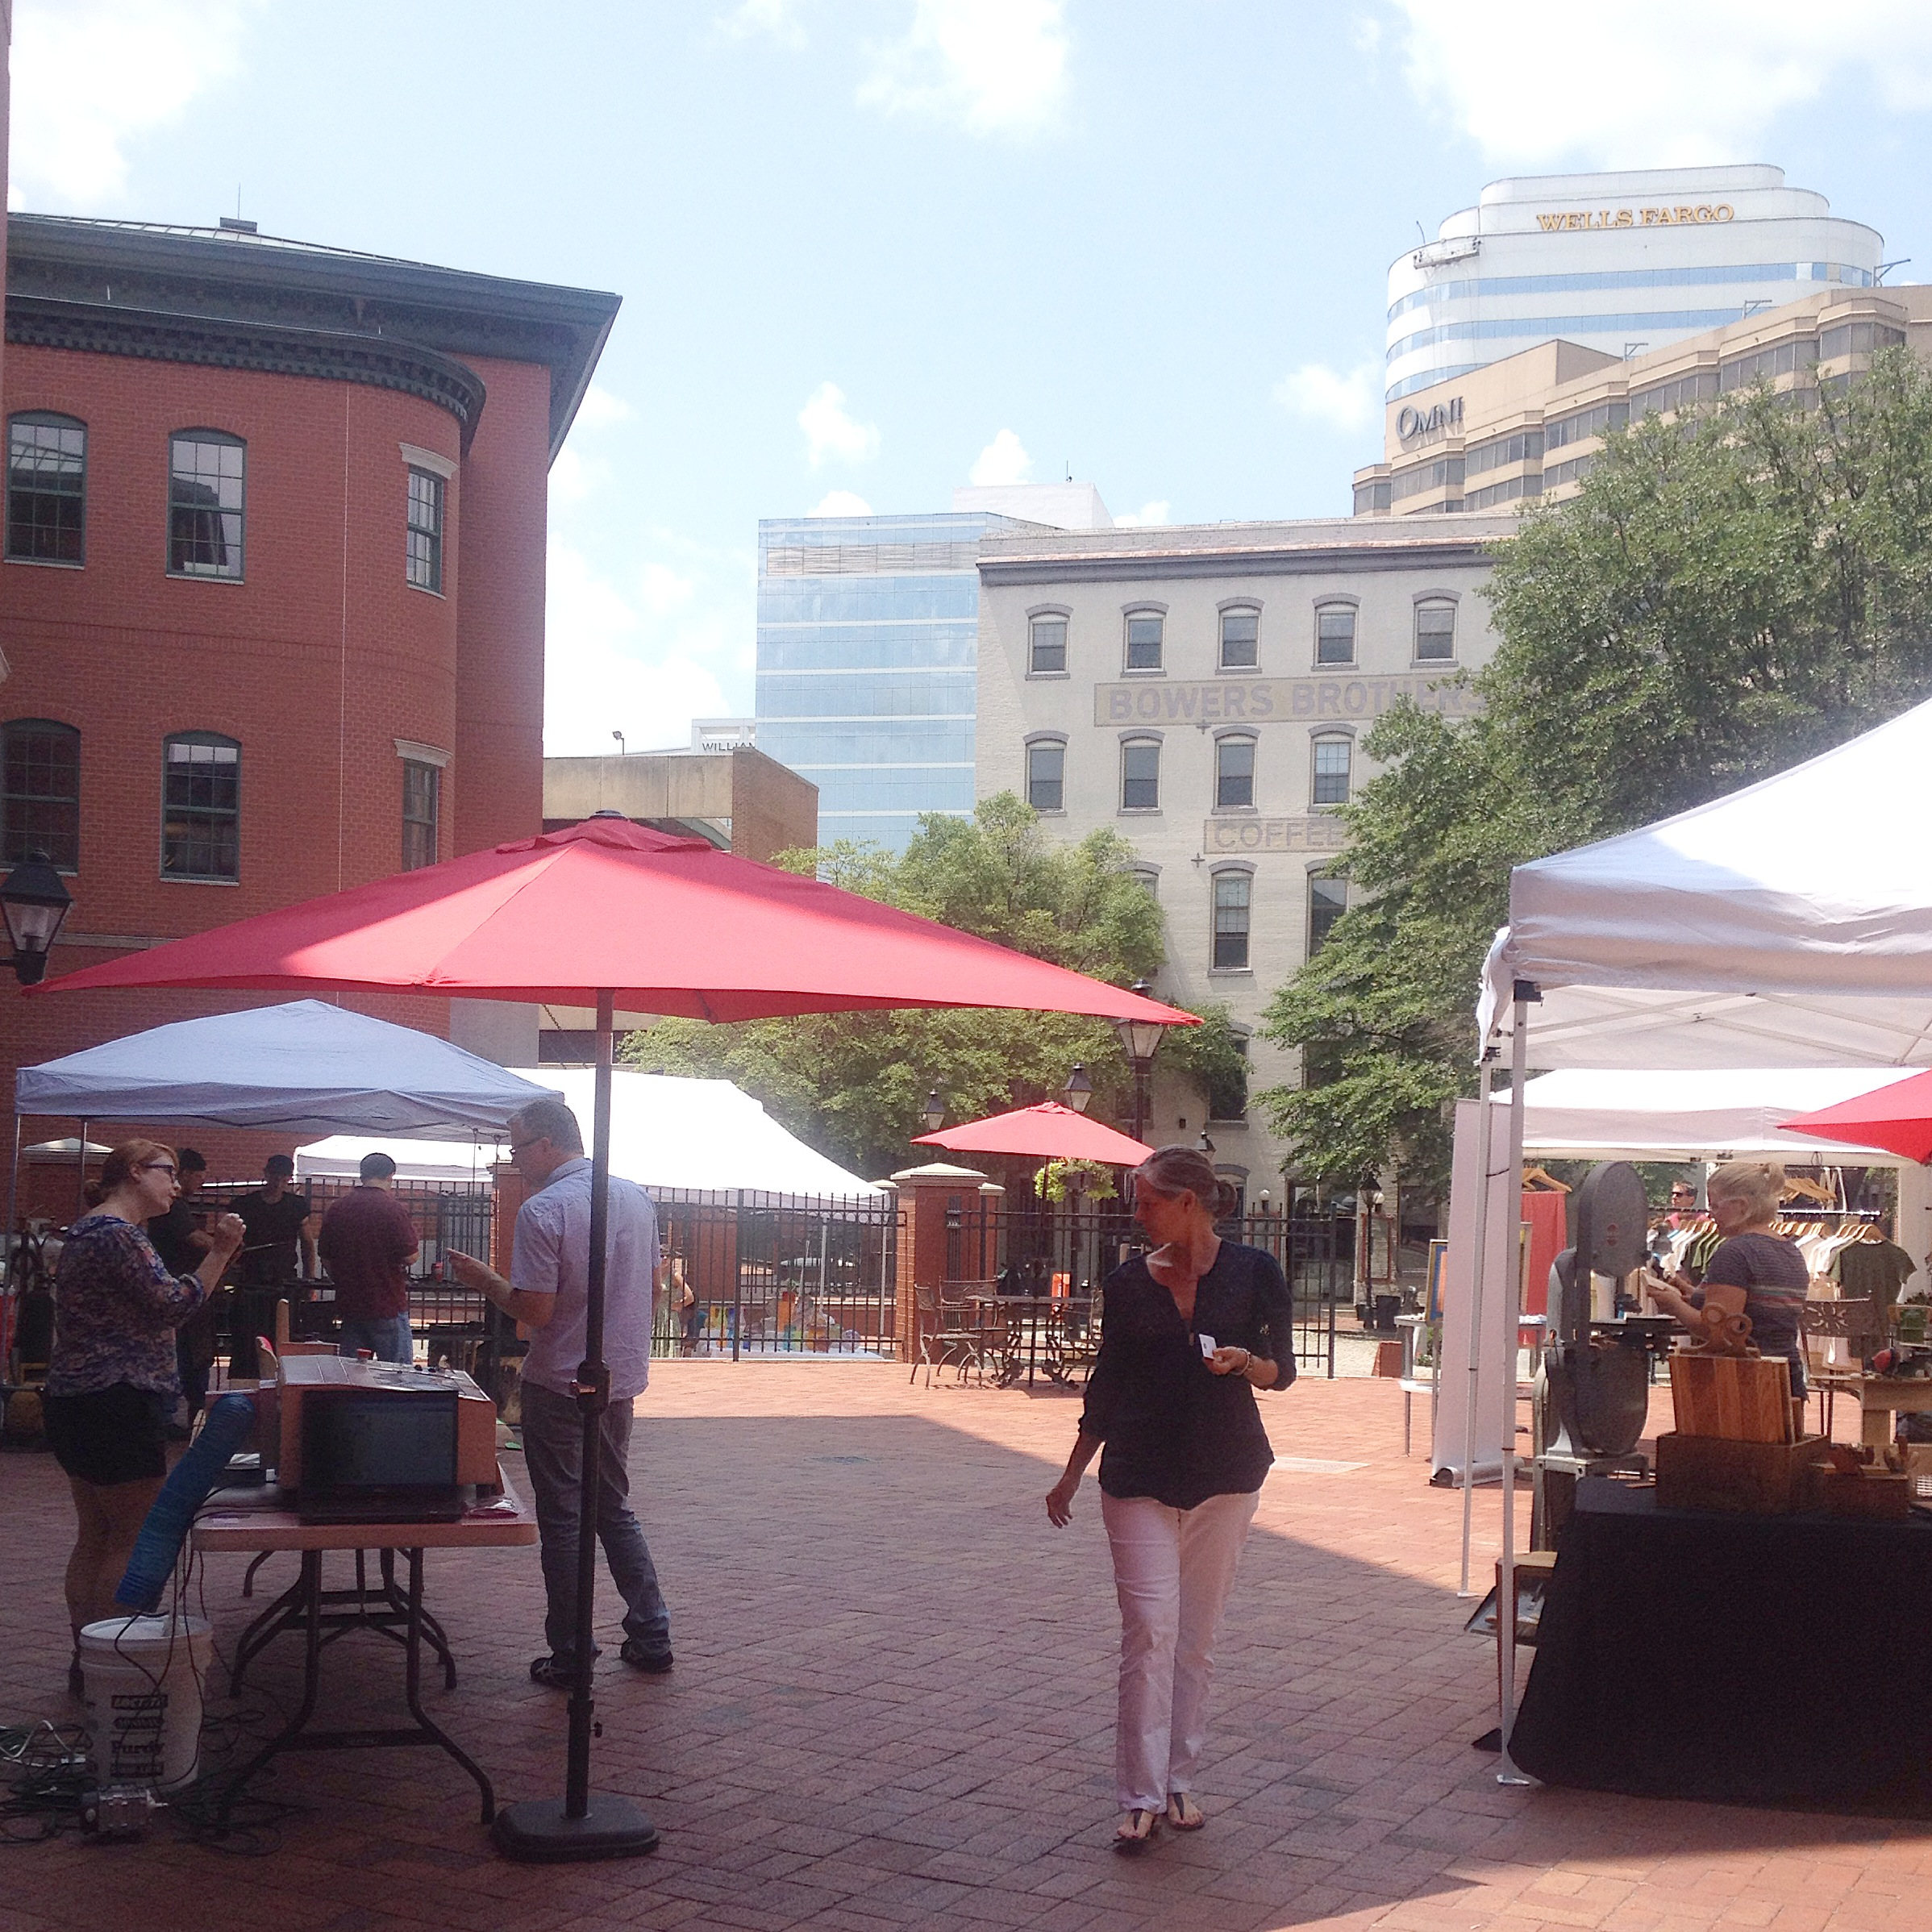 The Maker Fest was held on a hot but beautiful day in the  historic Shockoe Slip  area of downtown Richmond.